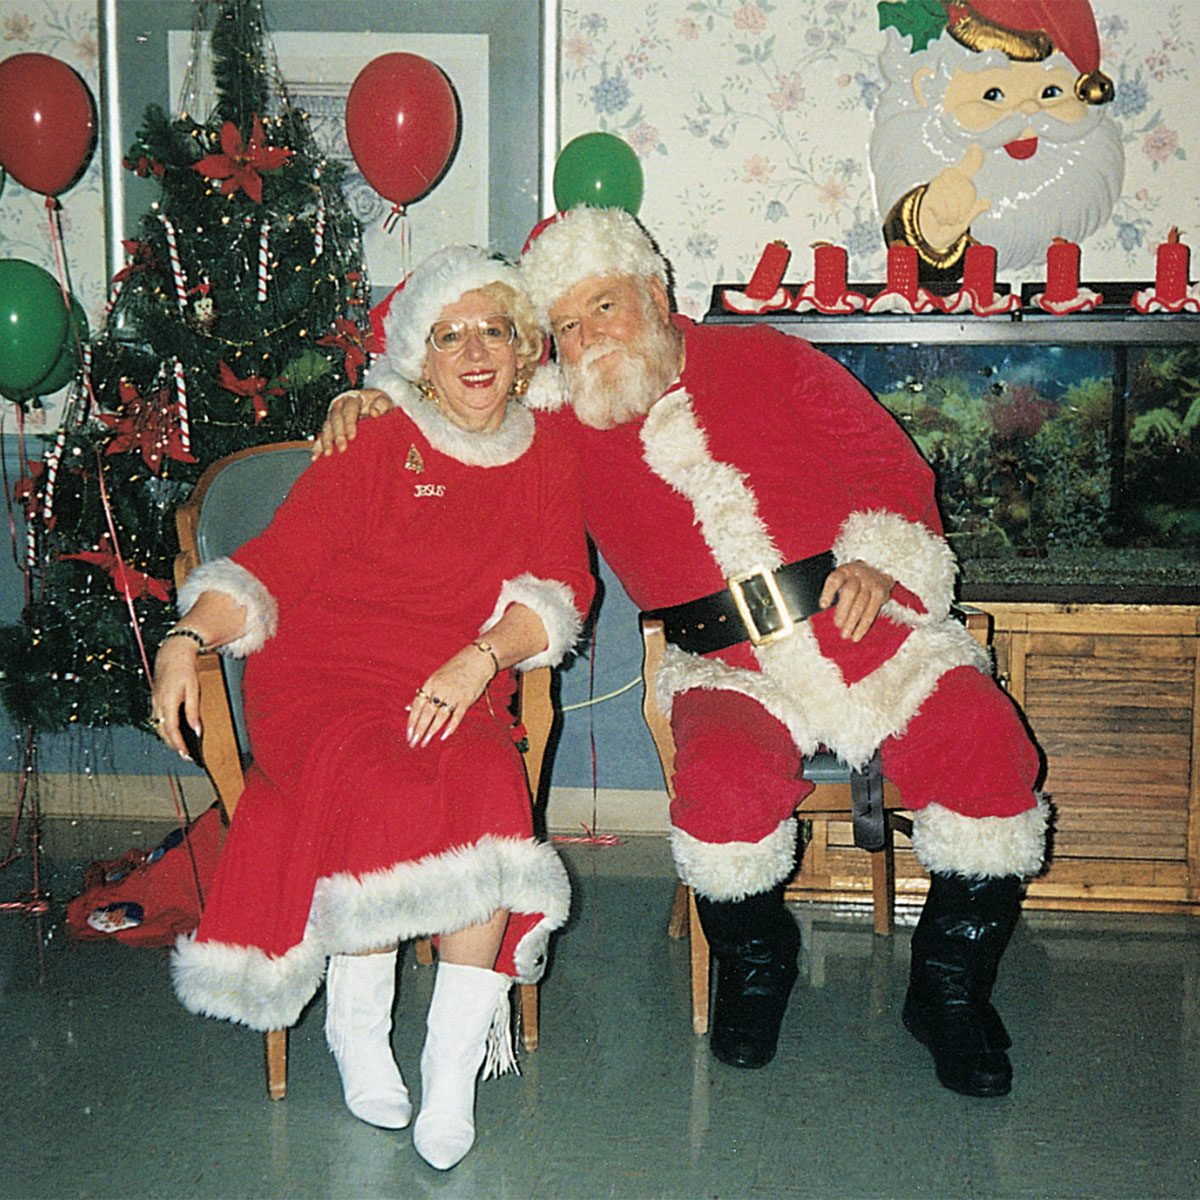 Mr. and Mrs. Claus sitting next to one another